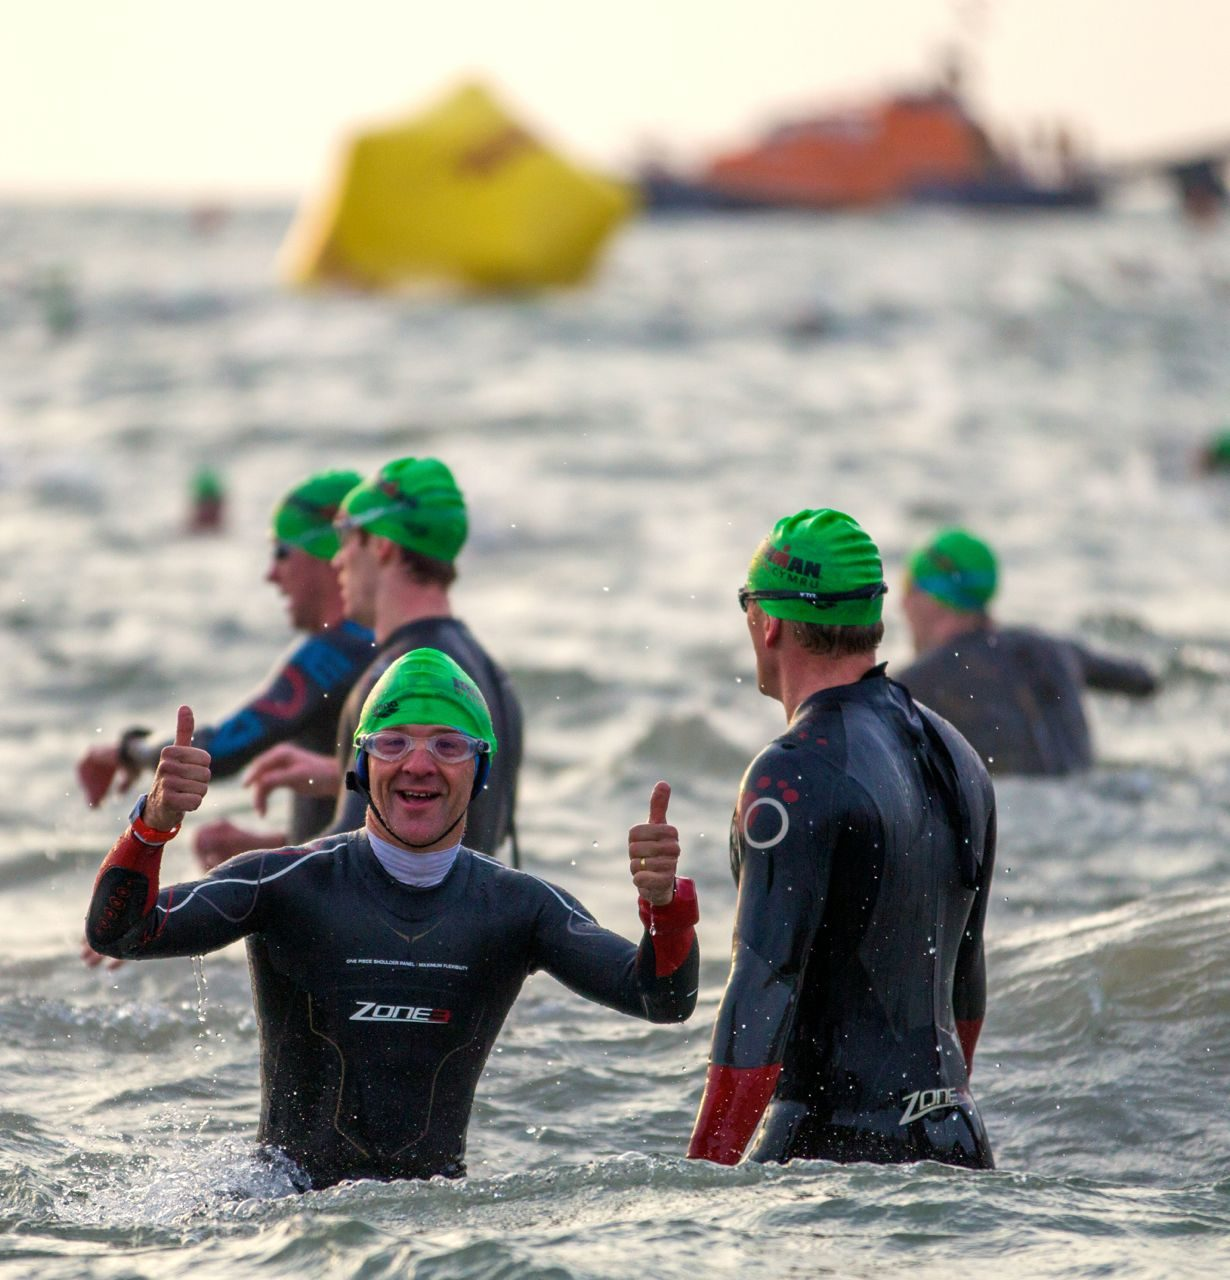 Mark Kleanthous in the water ahead of Ironman Wales